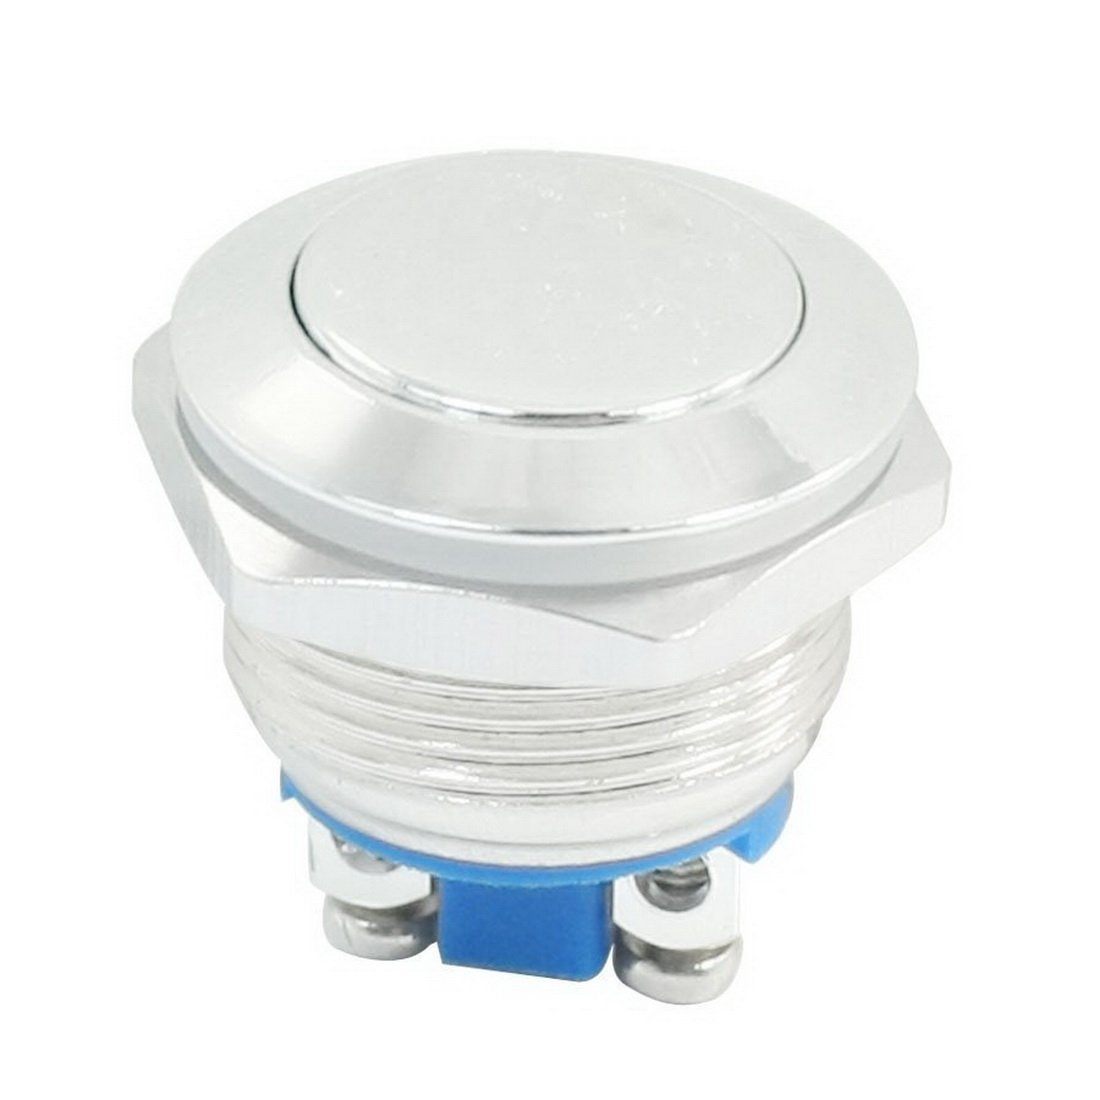 WerFamily 19mm Waterproof Momentary Type Stainless Steel Metal Push Button Switch High Flush Resetable 250V 3A 1NO SPST